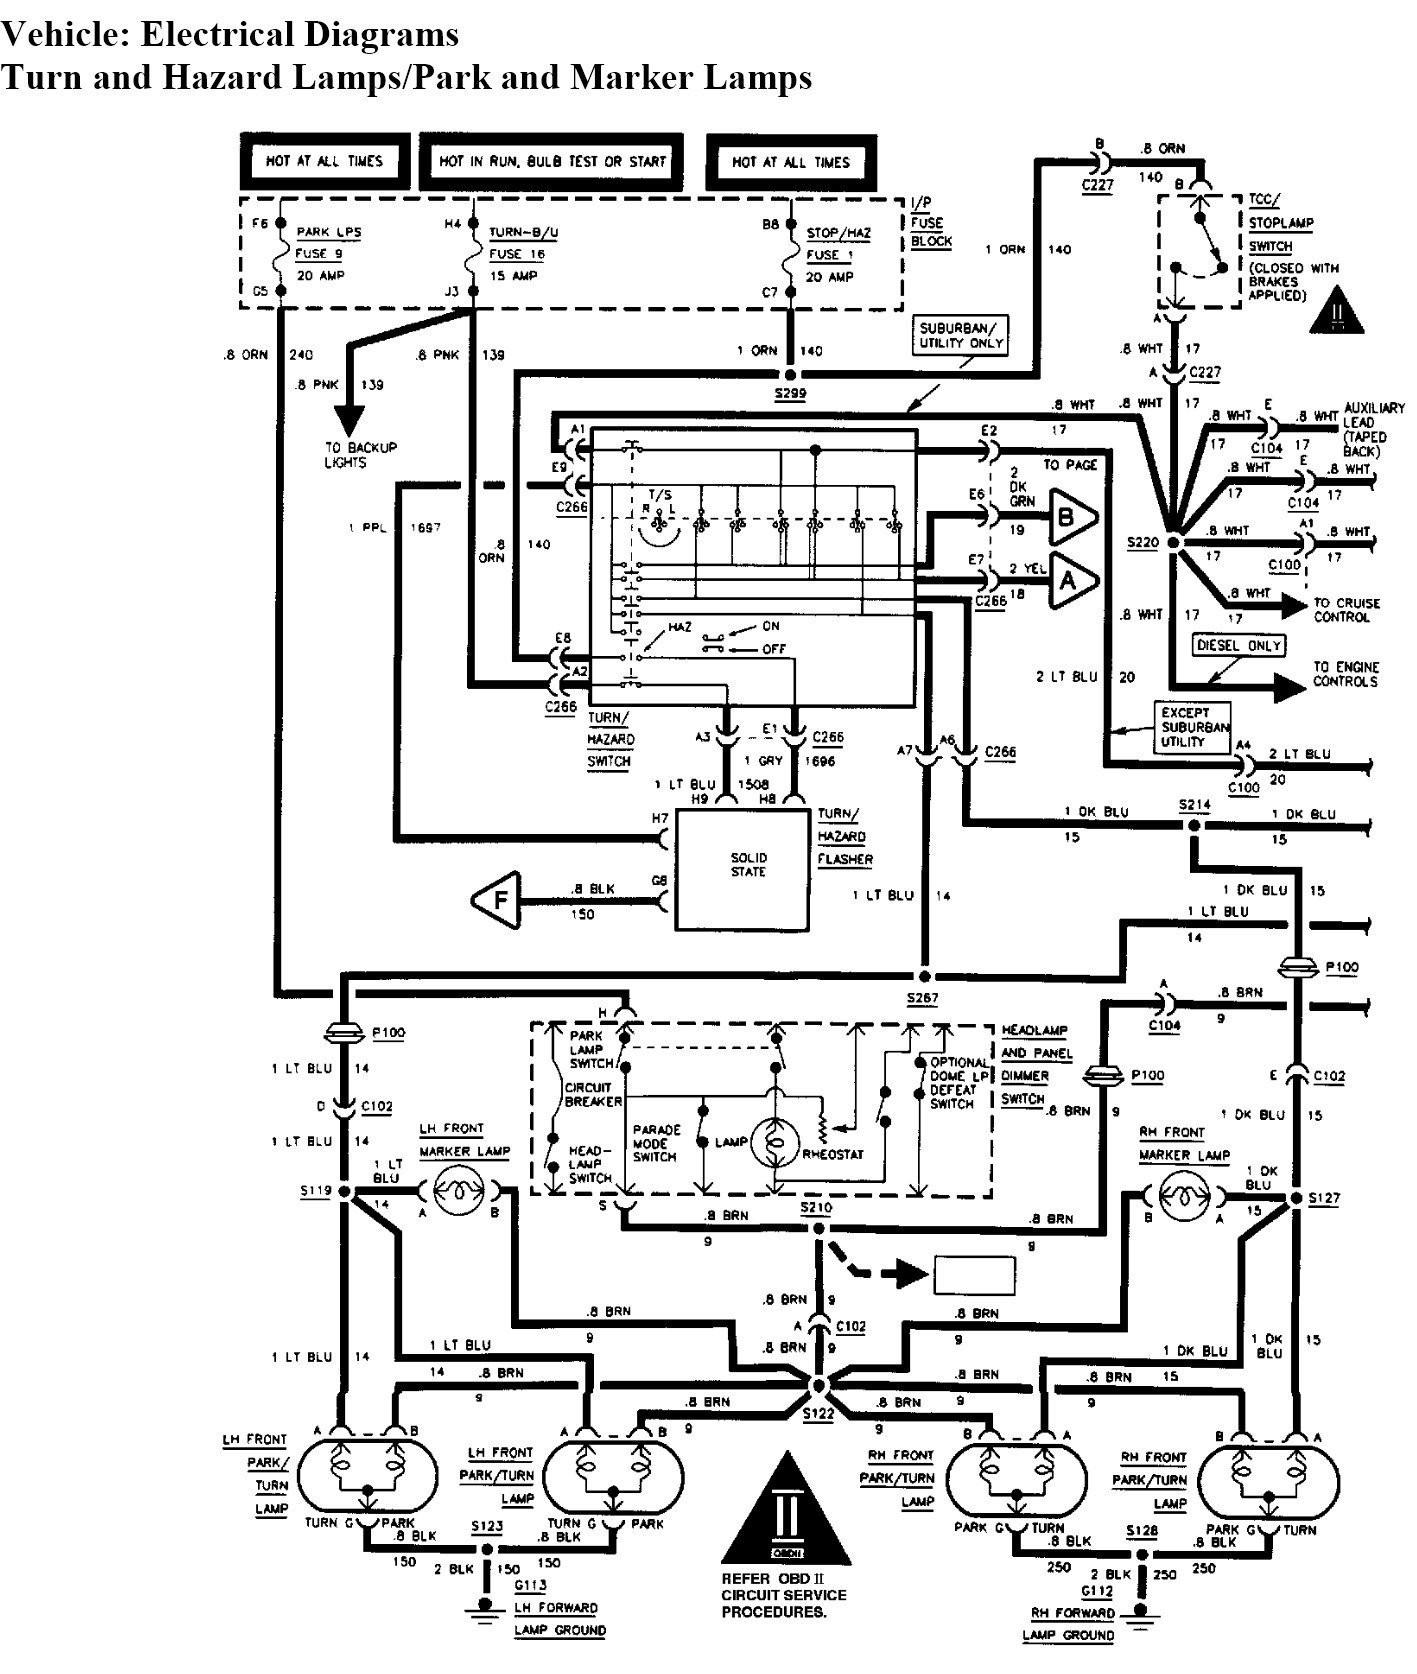 ... 2000 Jeep Grand Cherokee Laredo Parts Diagram - Trusted Schematics Jeep  Grand Cherokee Laredo Wiring Diagram ...